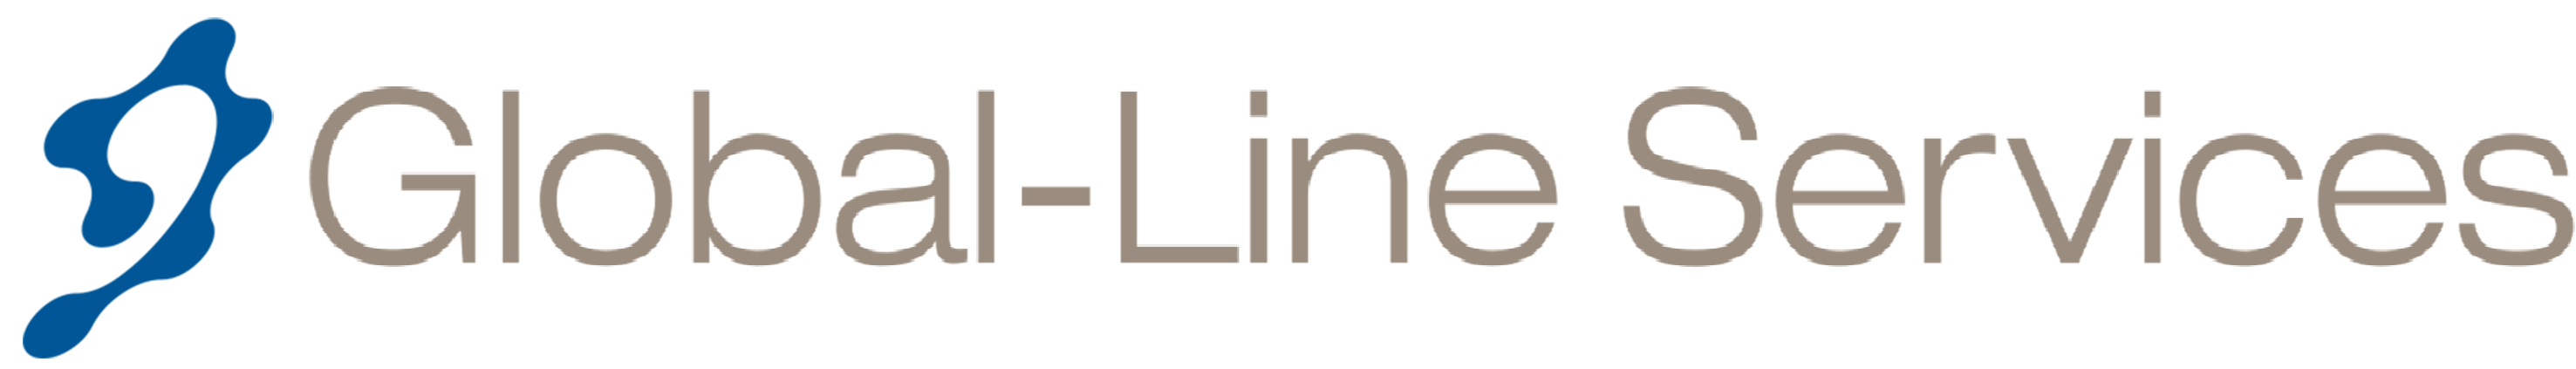 Global-line Services